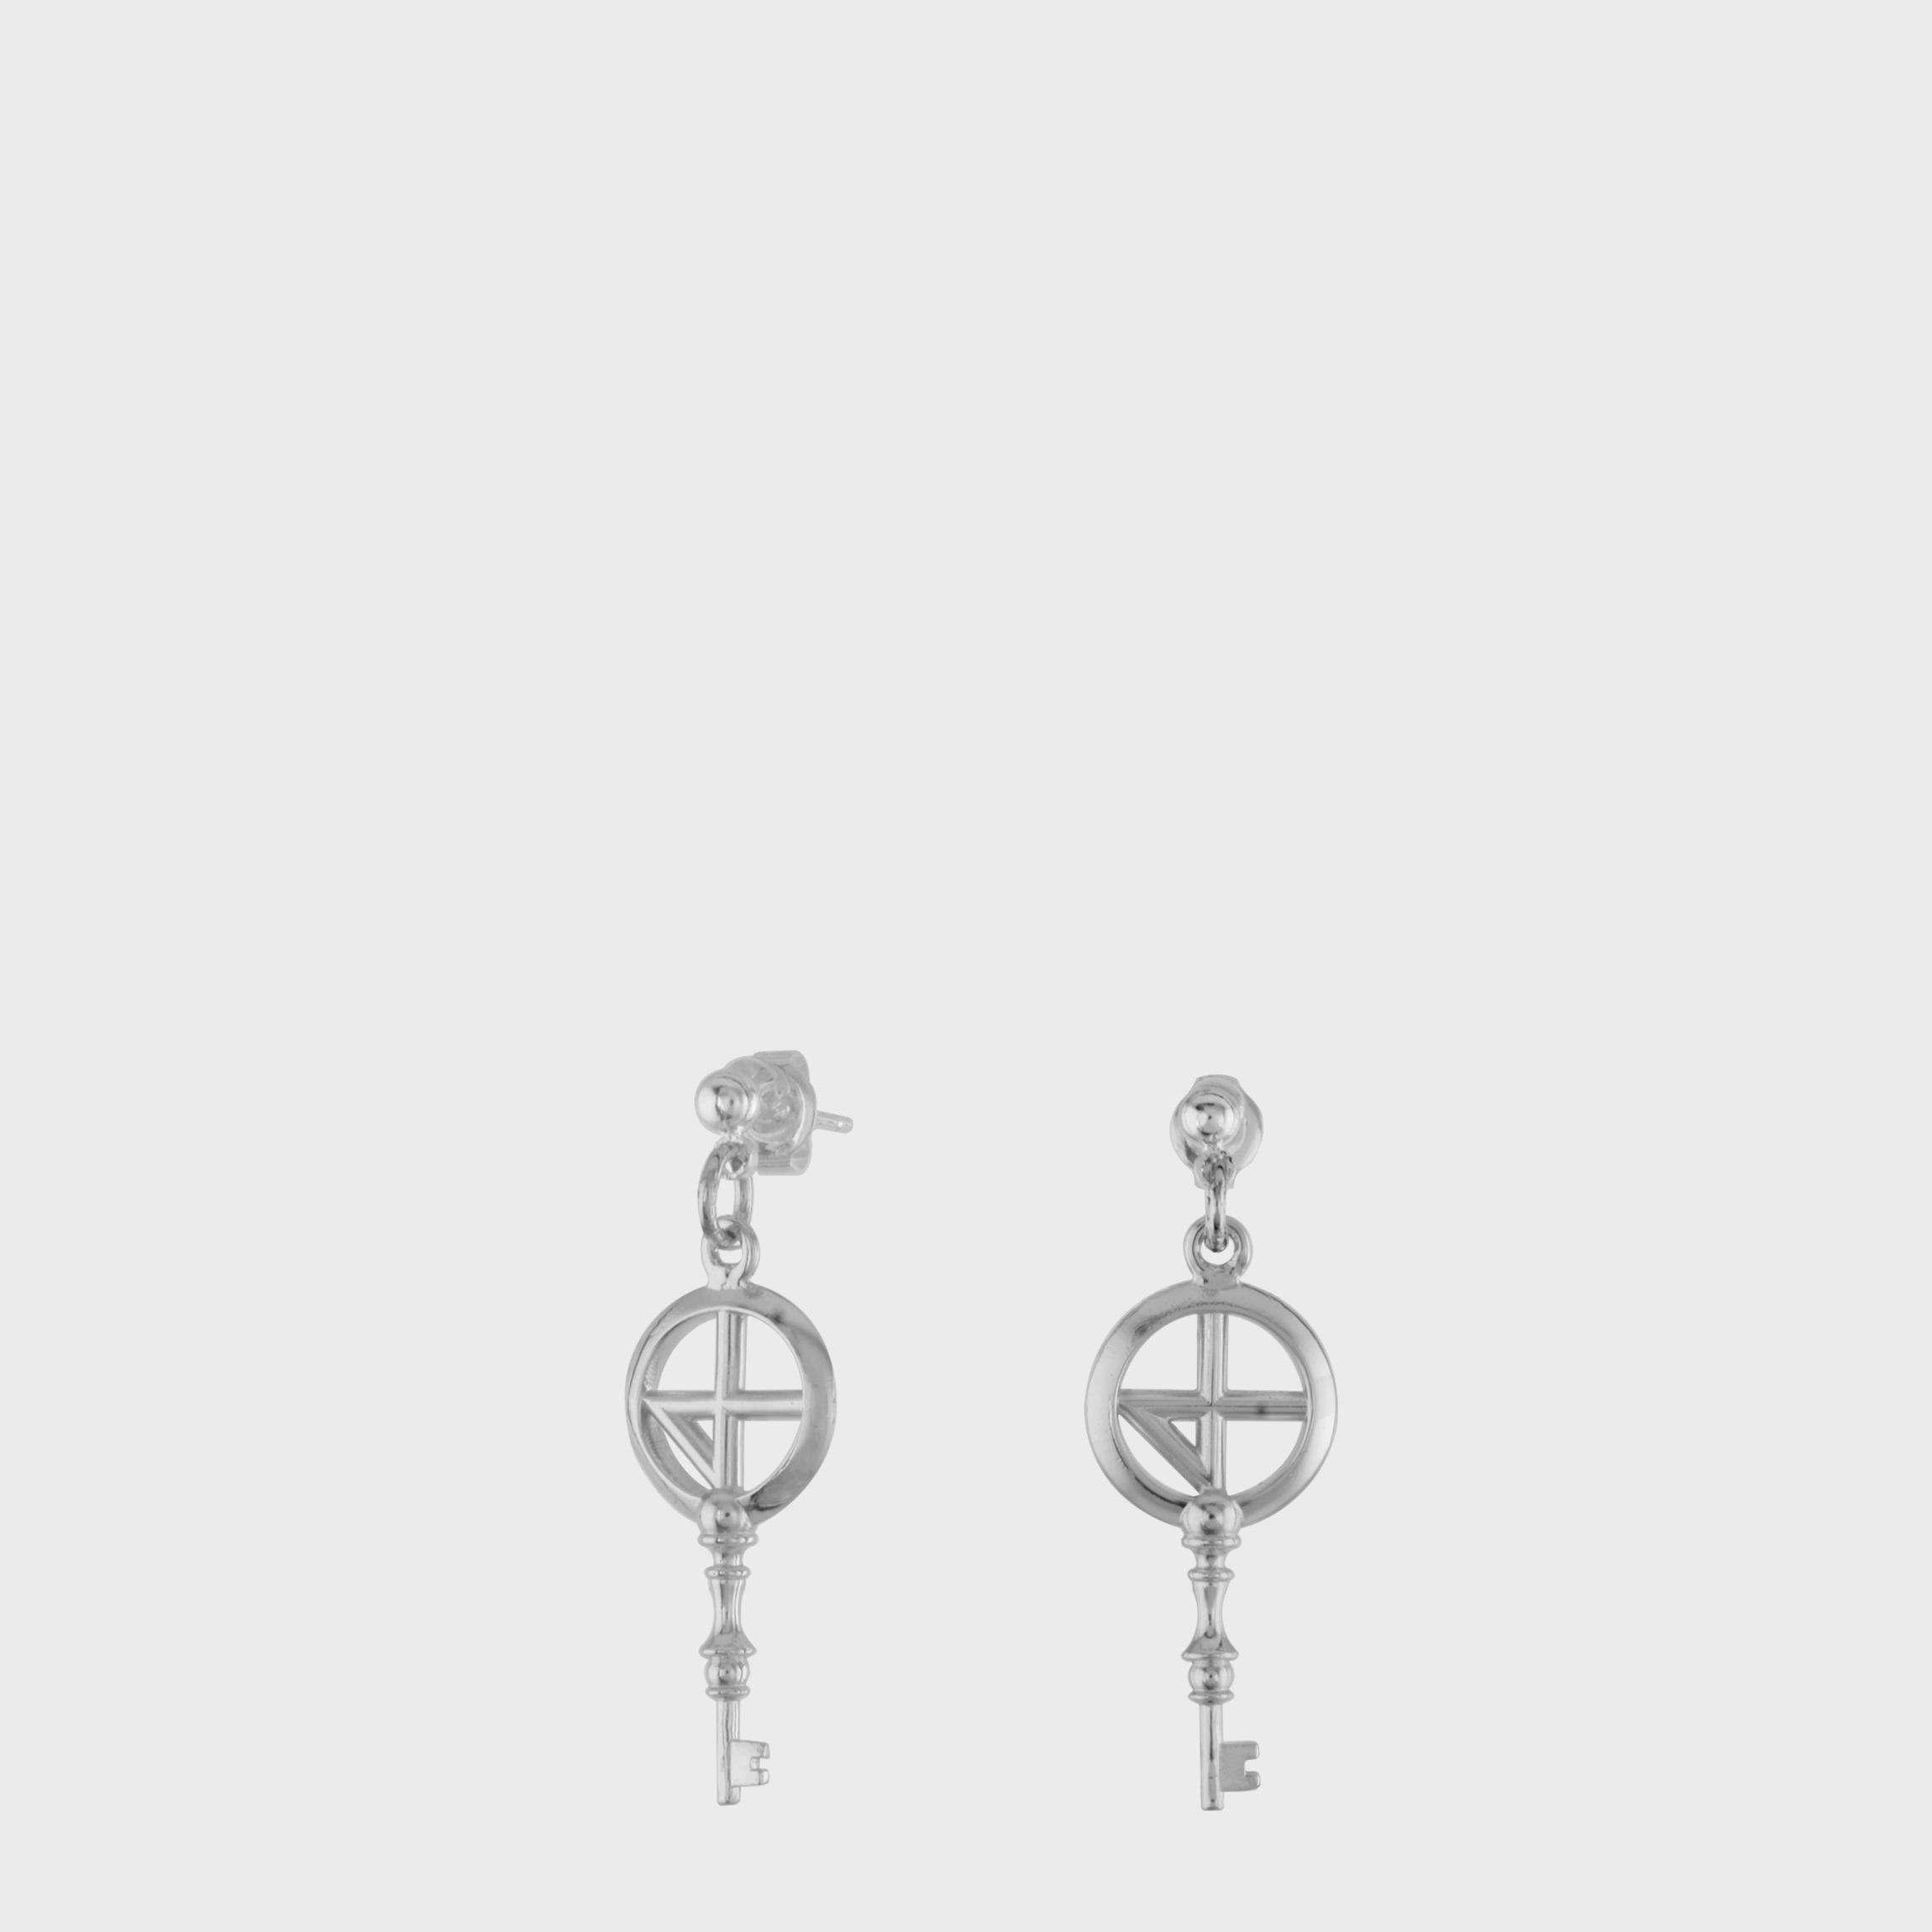 [논논] COMPASS KEY02 EAR